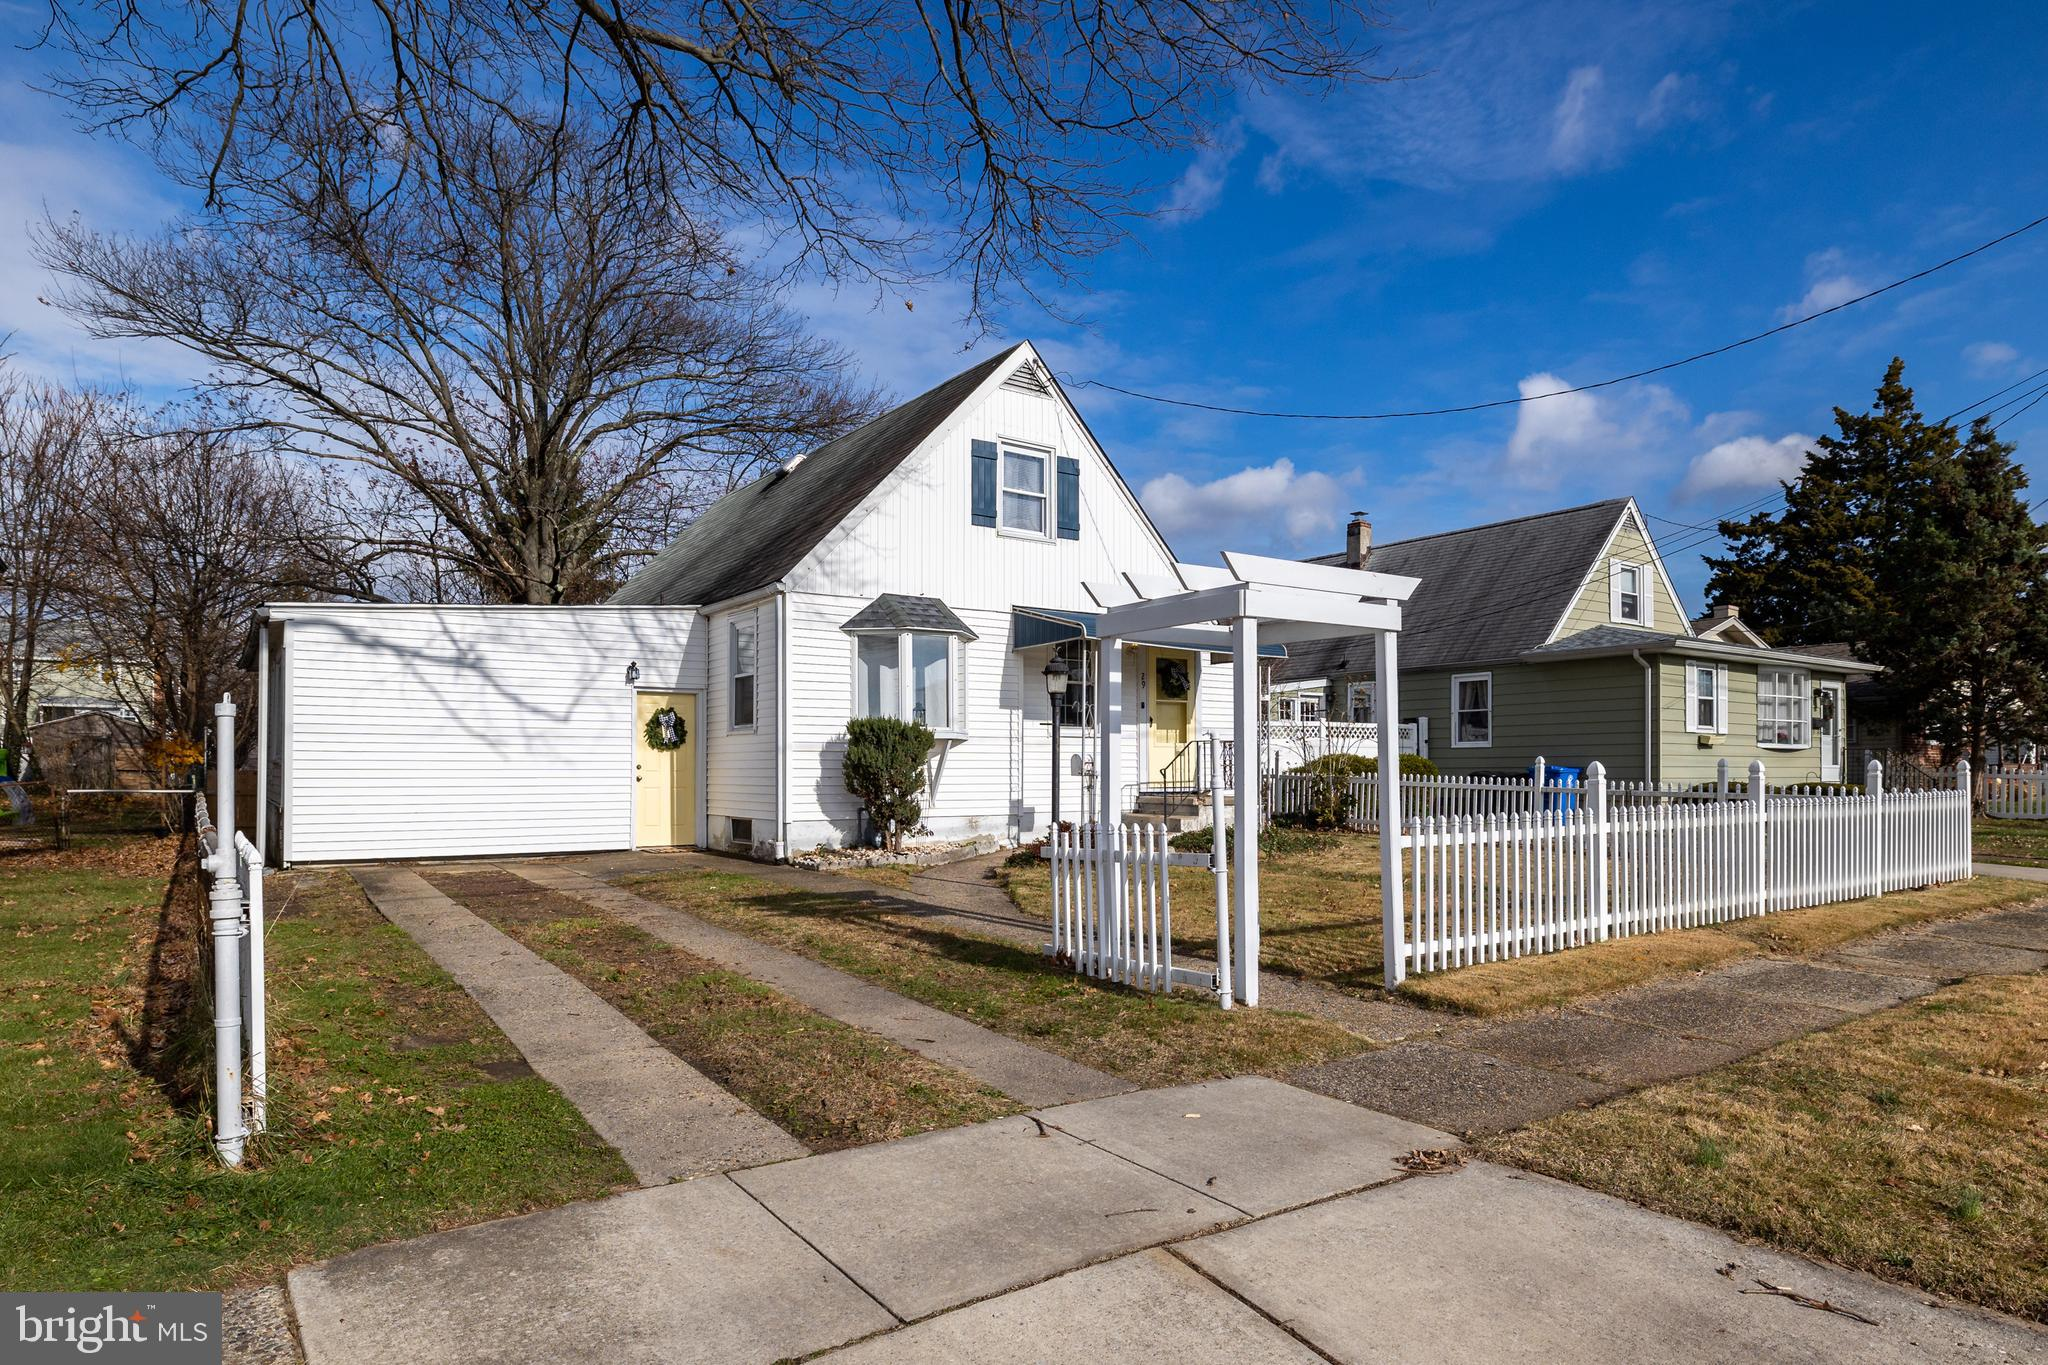 Welcome to 29 W. Broadway in Historic Maple Shade. This adorable Cape Cod is walking distance to bustling Main Street, the heart of downtown.  On the main floor, find the living room, dining room, eat-in kitchen, laundry and family room with a wood-burning stove. From the family room, access the large, fenced backyard with a storage shed. Also, on the main floor, are two bedrooms and the full bath and access to the basement. Upstairs are two more good size bedrooms. New central air conditioning summer 2020 and new furnace November 2020. Freshly painted and new carpet in family room. Hardwood flooring throughout. Don't delay …this one will go fast.